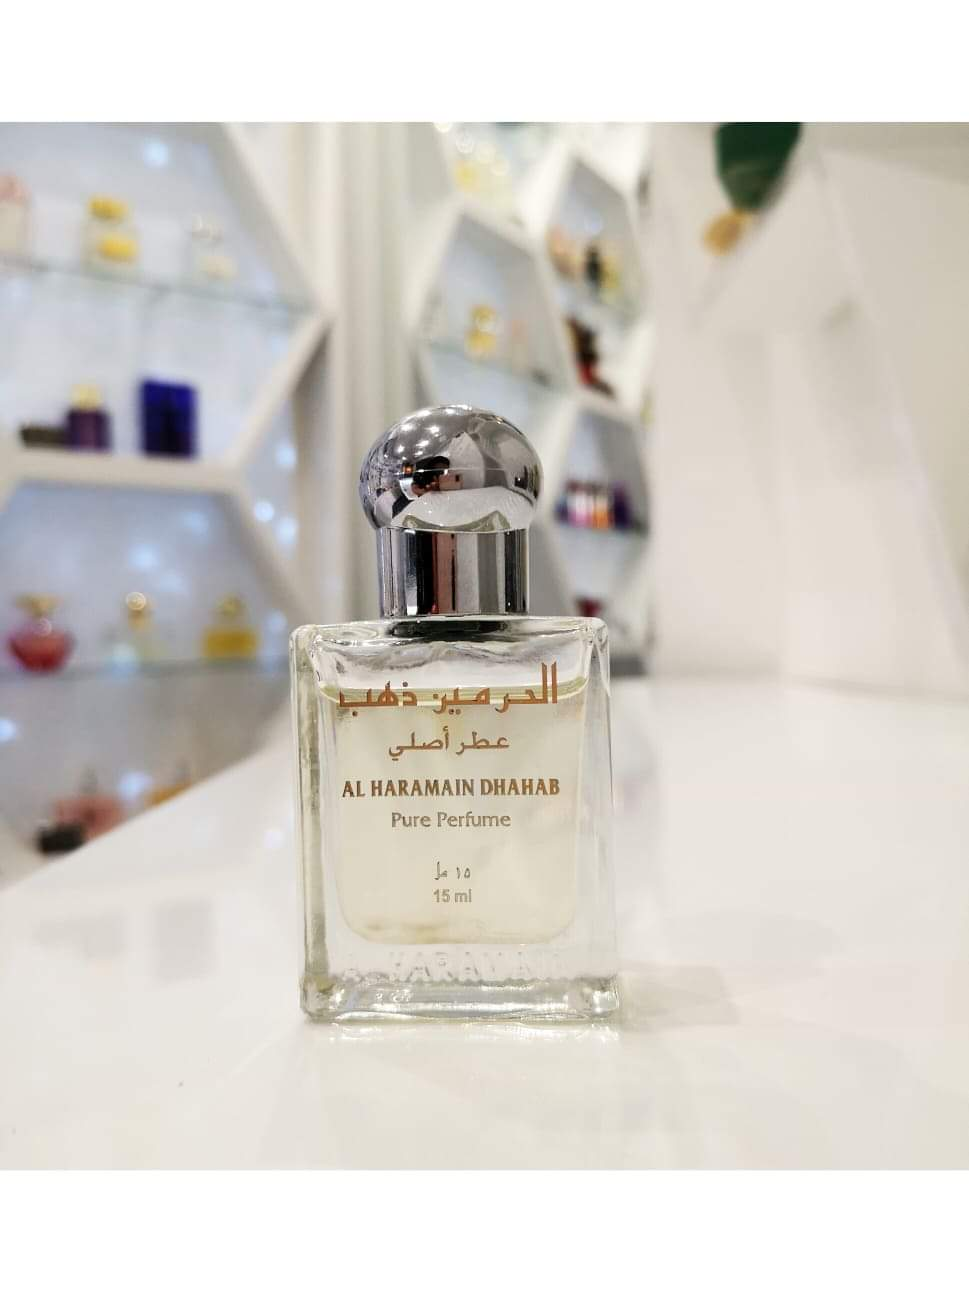 Al Haramain Dhabab oil 15ml